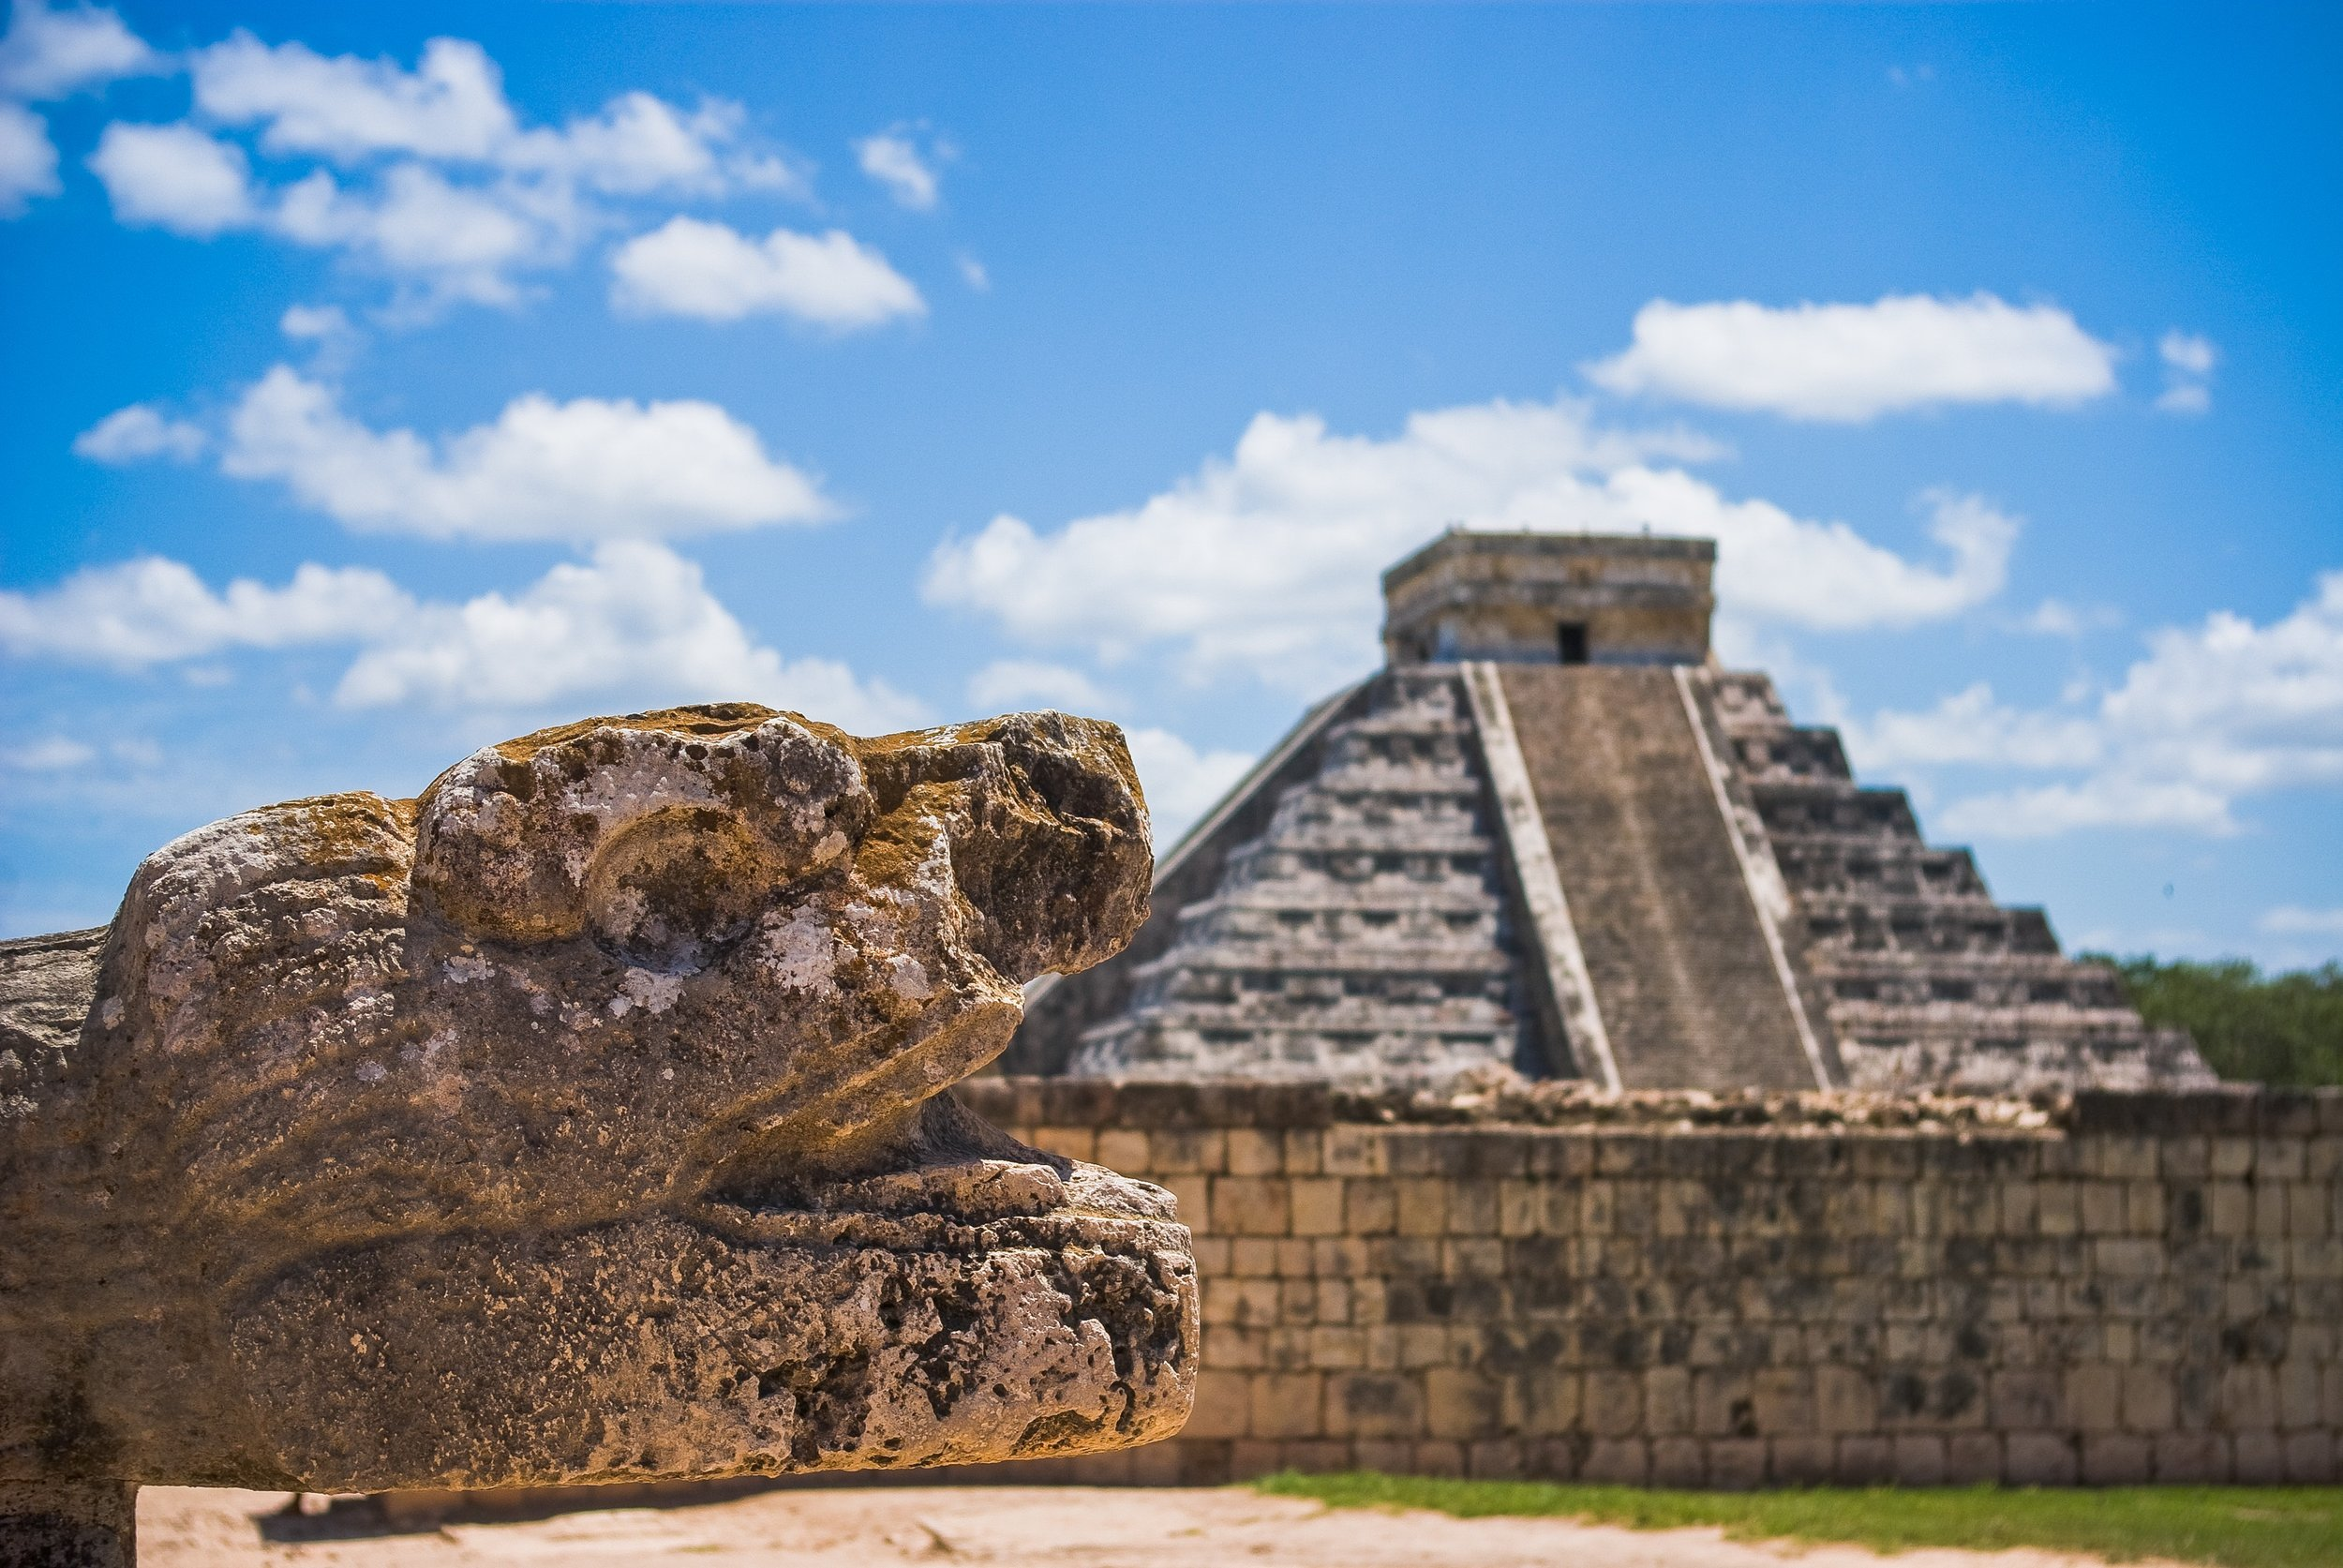 #1: Bring Back Your Office Magic by exploring Sacred Ruins in South America -